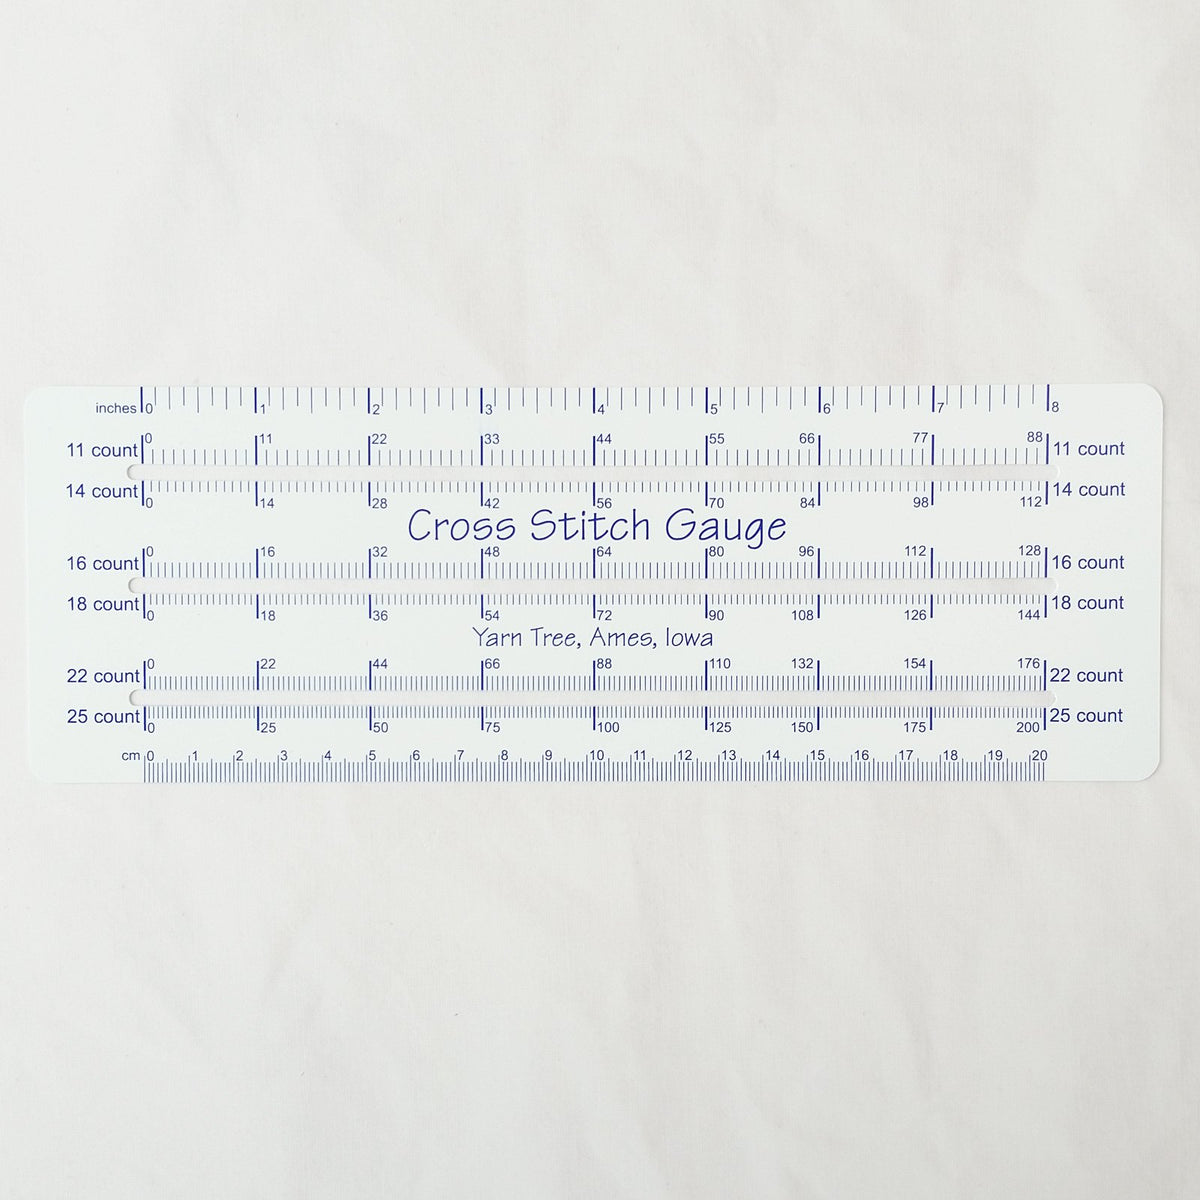 Cross Stitch Gauge and Rule